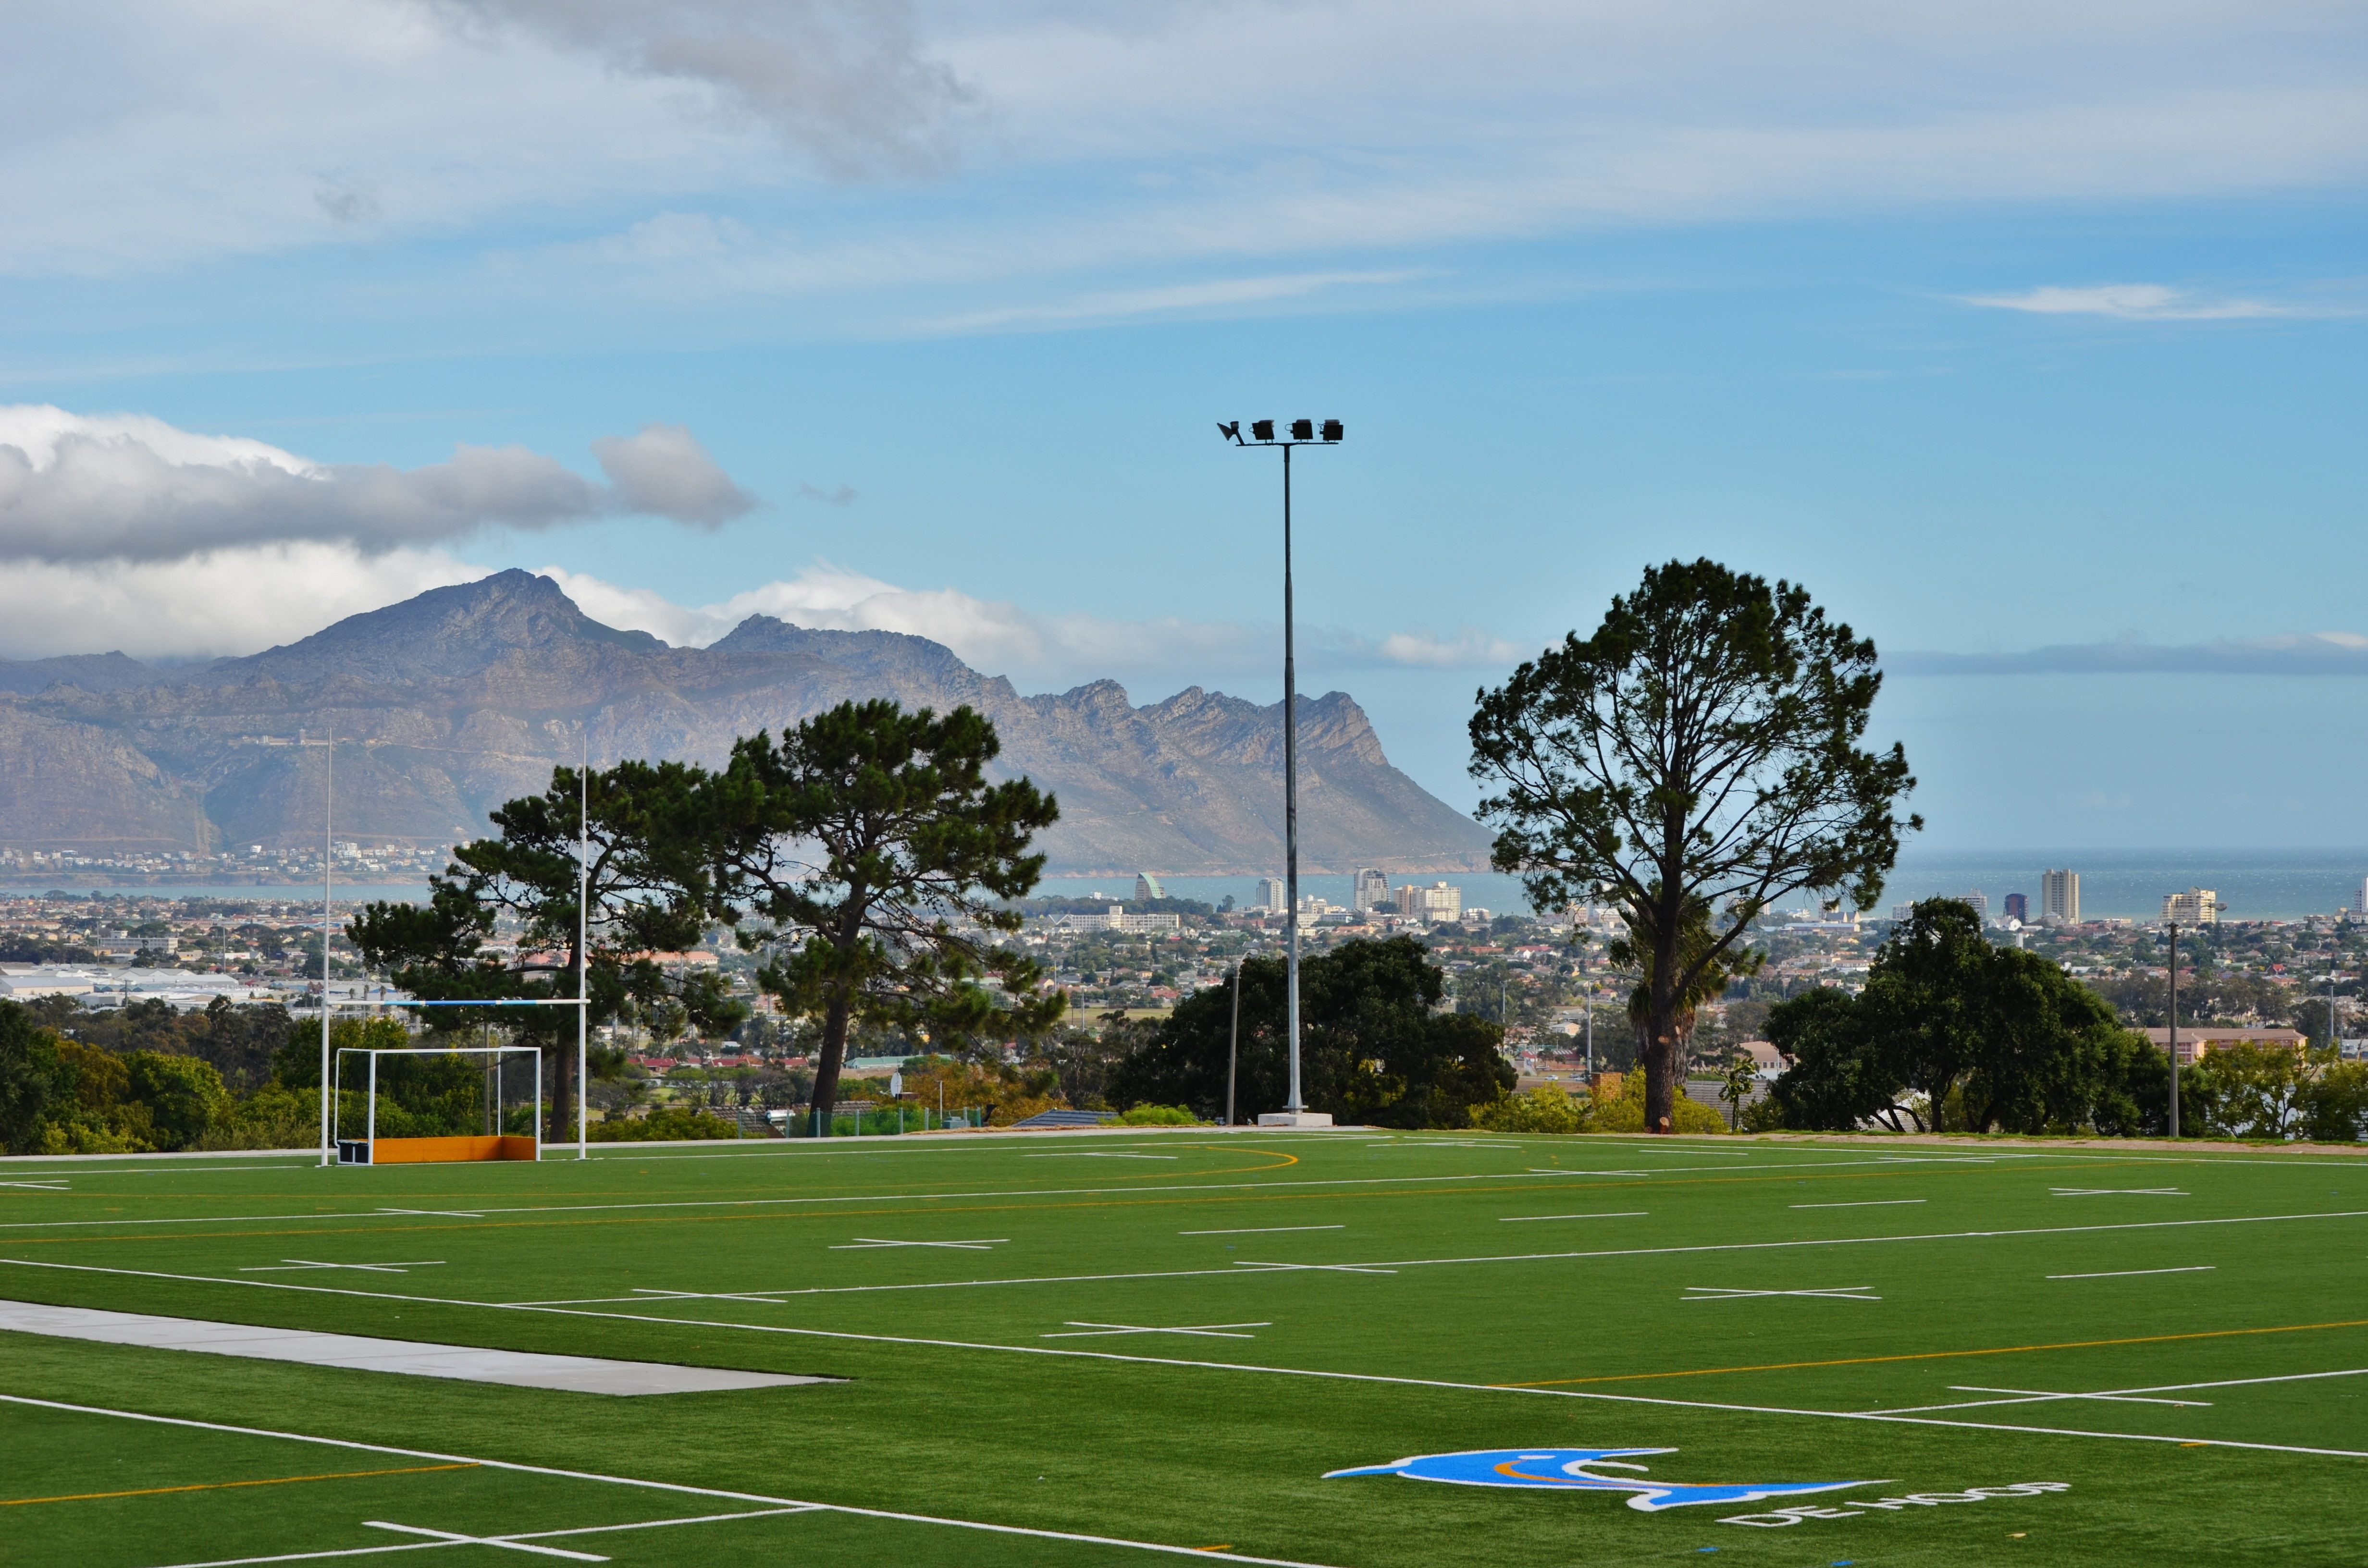 One synthetic pitch for all sports should be more than